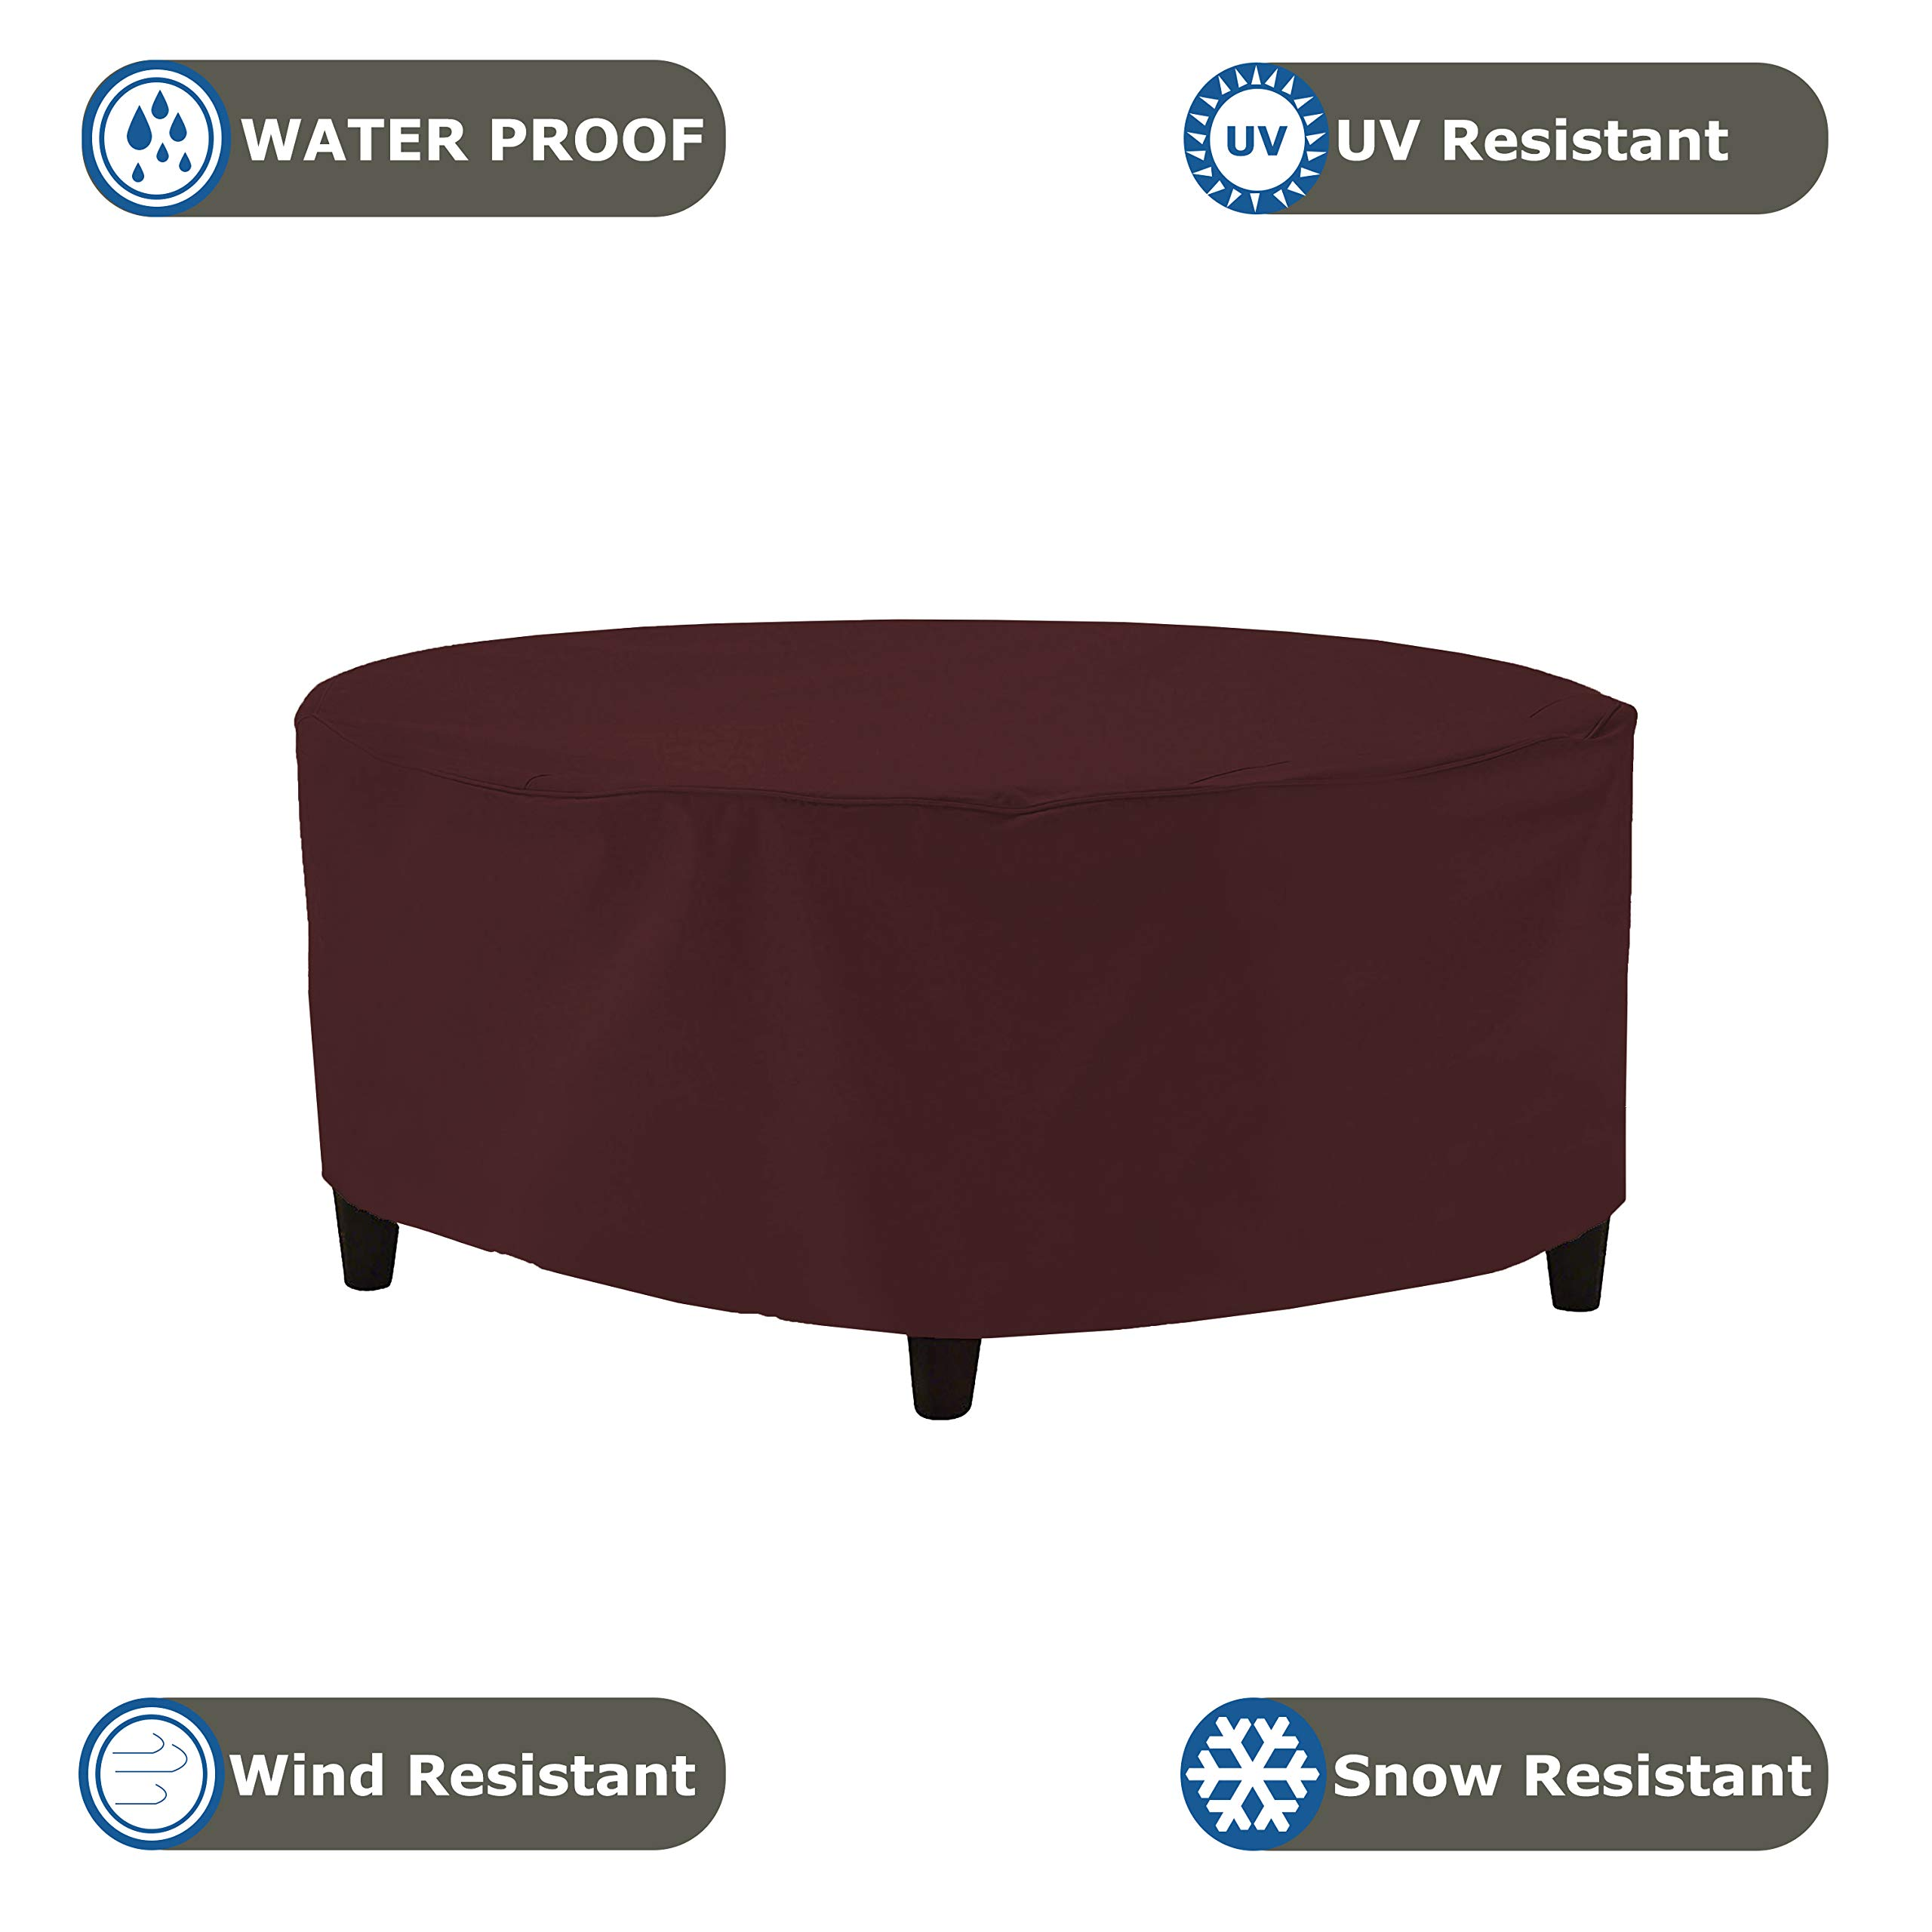 Outdoor Ottoman Cover 18 Oz - Waterproof & Weather Resistant Patio Furniture Covers - Round Ottoman Cover Heavy Duty Fabric with Drawstring for Snug fit (50'' Dia x 24'' H, Burgundy) by COVERS & ALL (Image #3)